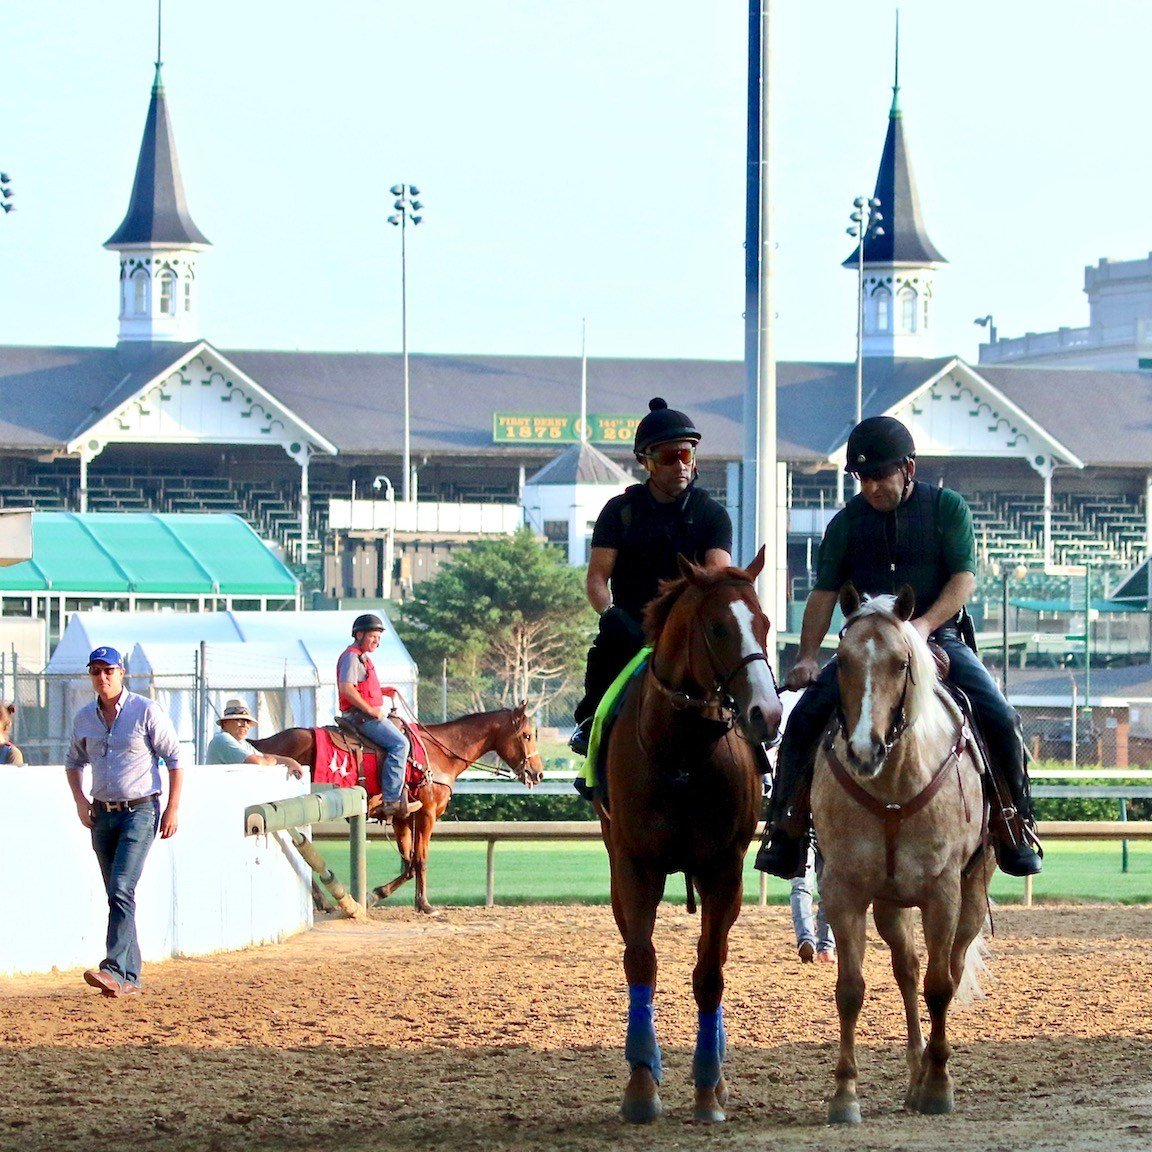 Justify heads off the track after galloping at Churchill Downs (WDRB photo by Eric Crawford)